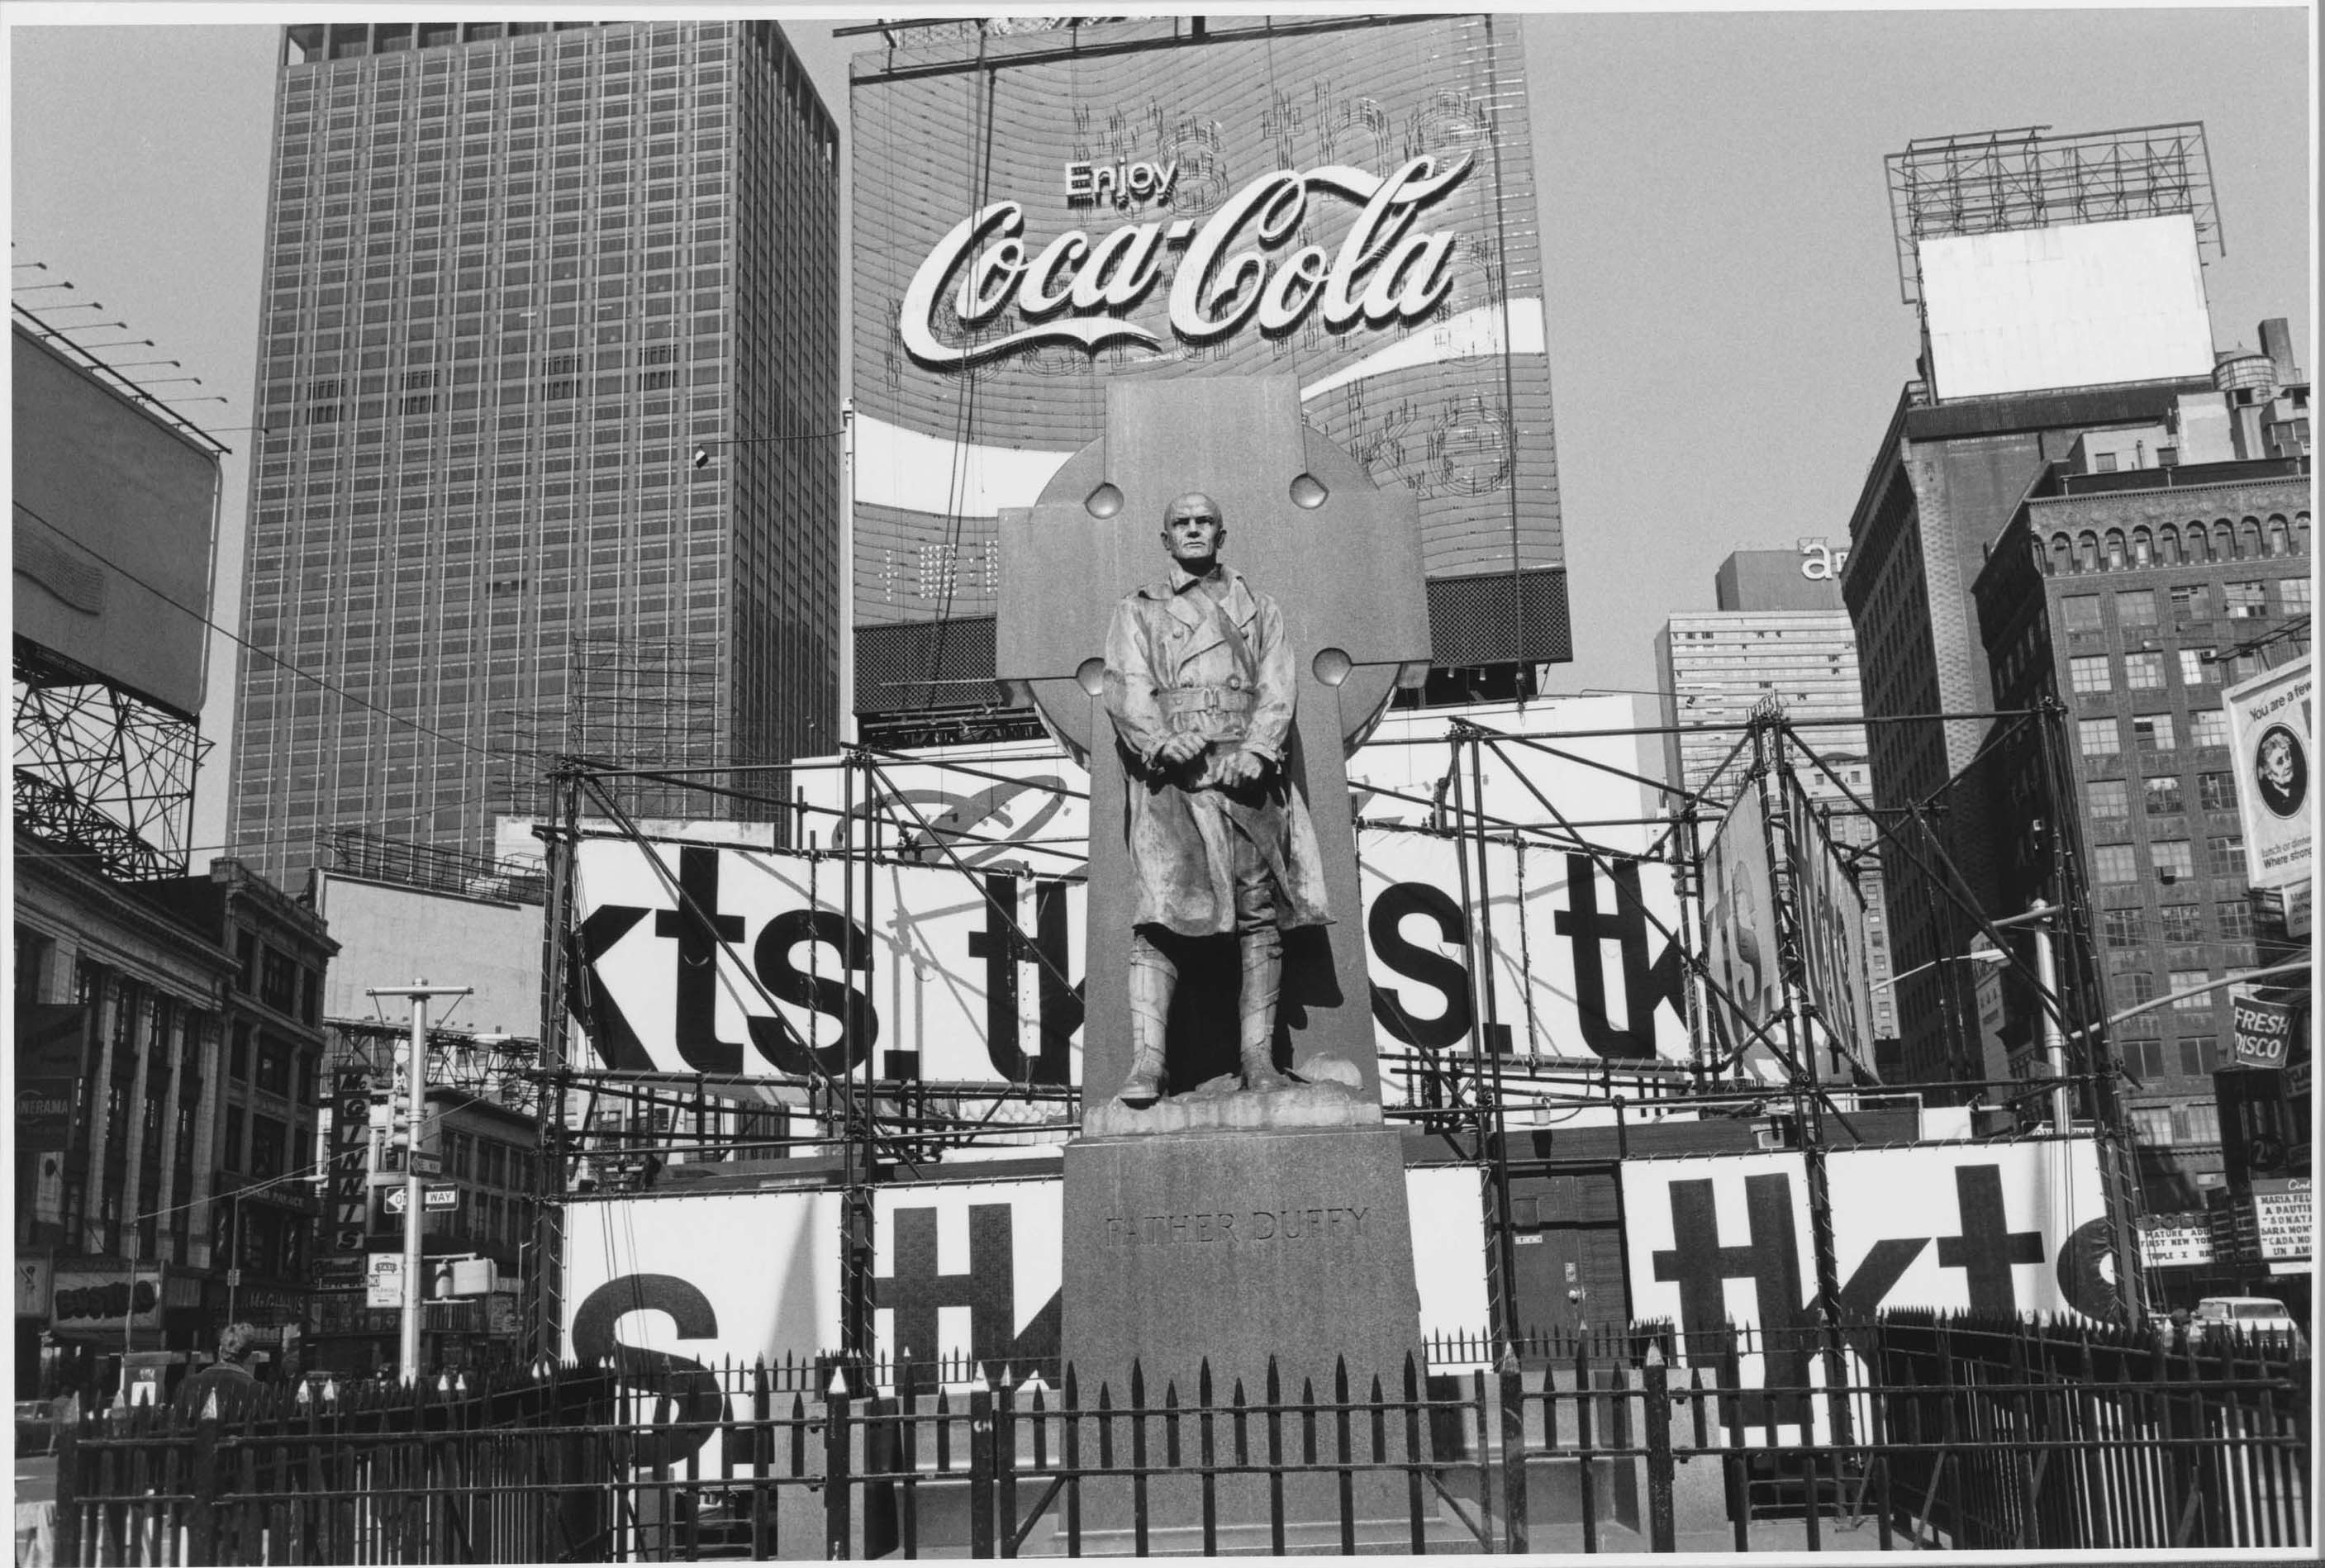 Lee Friedlander. Father Duffy. Times Square, New York City. 1974. Gelatin silver print, 71/2 × 11 1/4″ (19.1 × 28.5 cm). The Museum of Modern Art, New York. Purchase. © 2005 Lee Friedlander